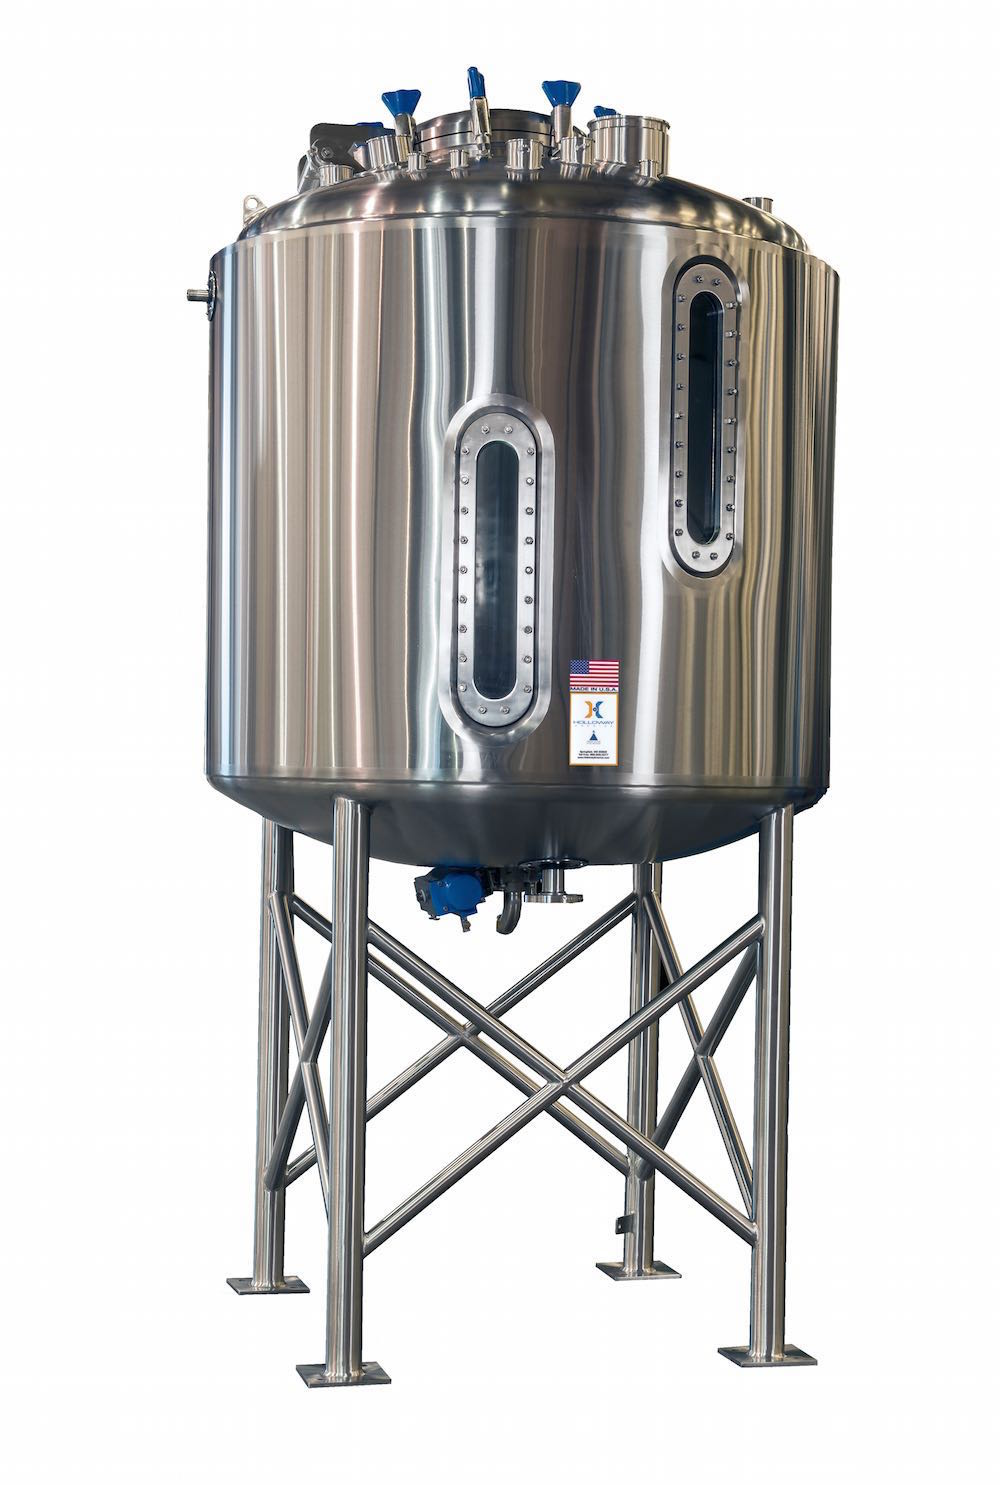 HOLLOWAY AMERICA specializes in producing fermentation vessels like the one shown here.